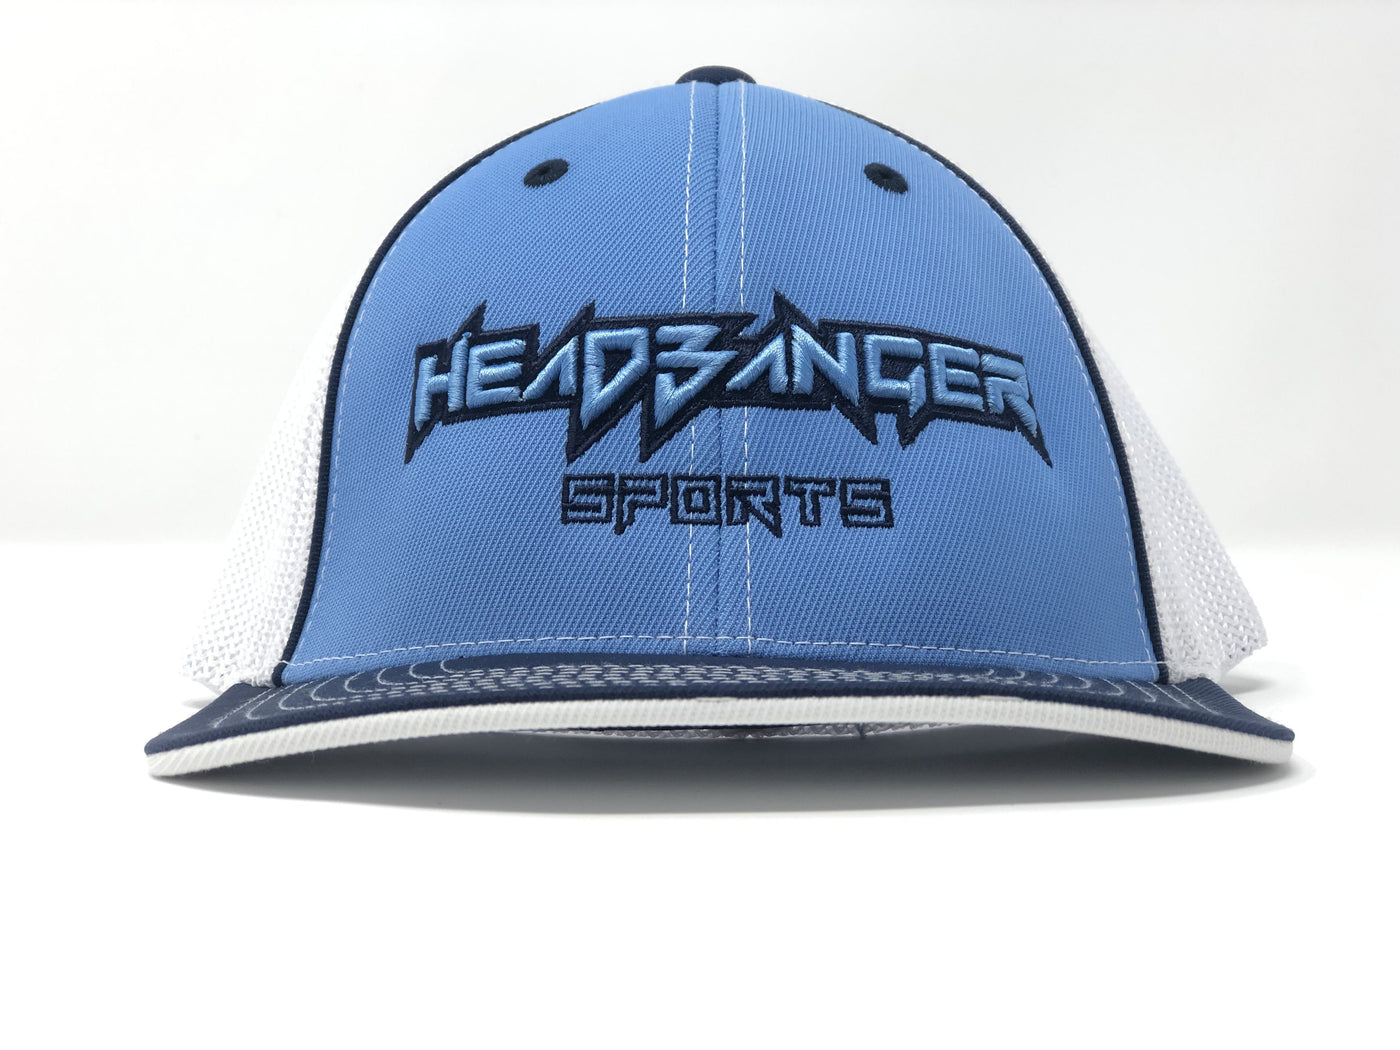 106e0970ce HB Exclusive Headbanger 404M Fitted Hat  HEEL Country